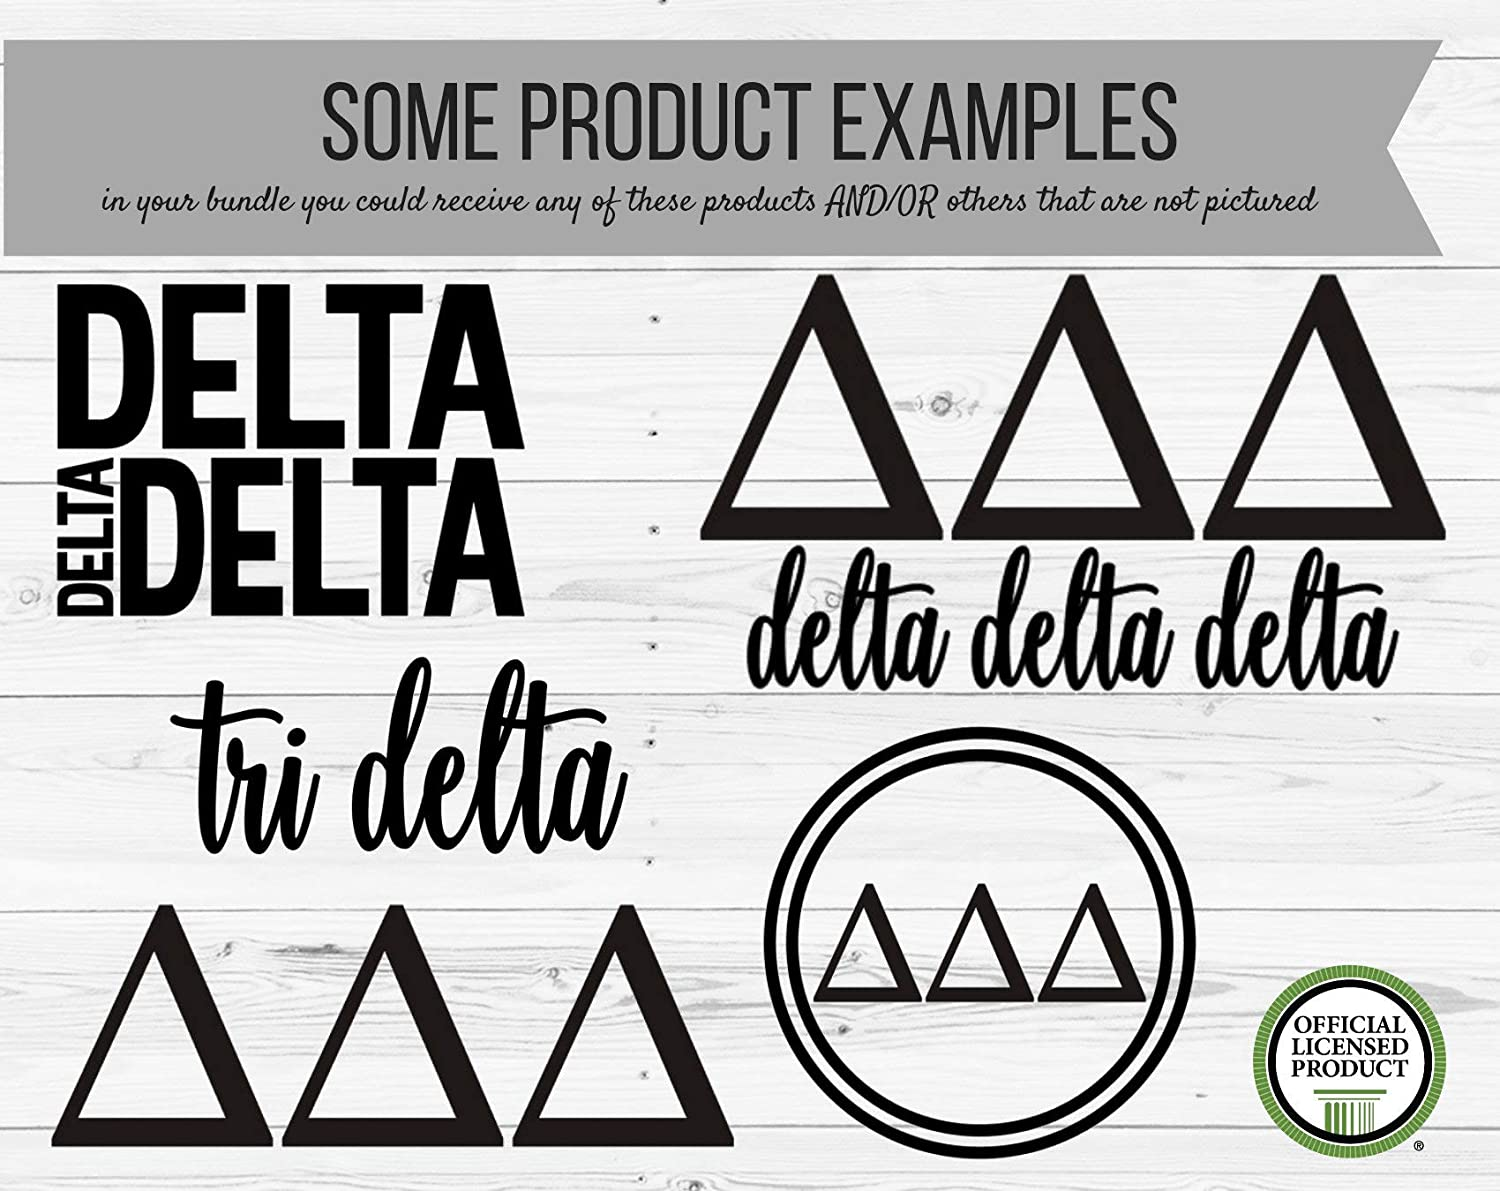 CLIFFBENNETT Delta Delta Delta Variety Pack of 10 Decals - Delta Delta Delta - Tri Delta - Tri Delta Stickers - Delta Delta Delta Decals - Laptop Sticker